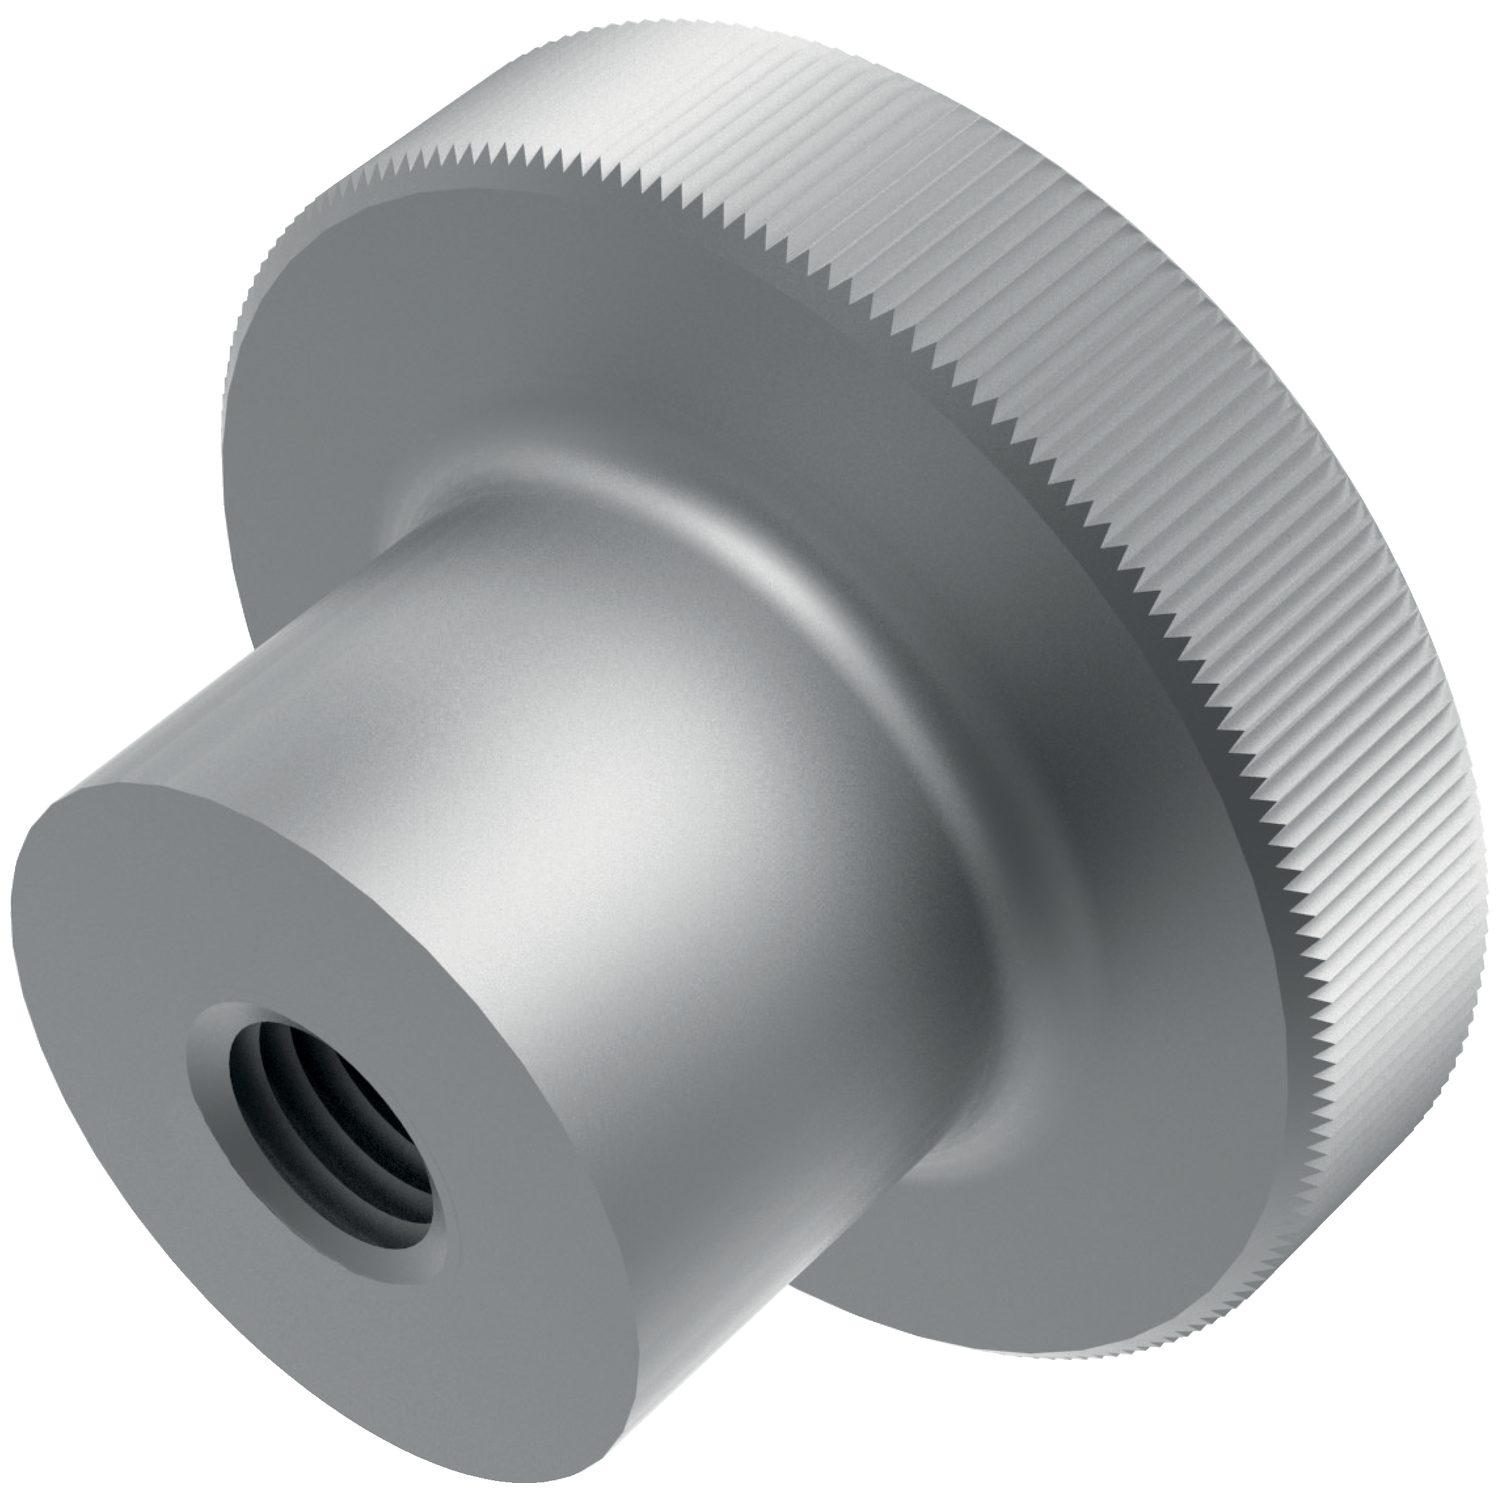 Knurled Thumb Nuts Thumb nuts are available in a wide range of shapes, sizes and material. For our full range, please click here.